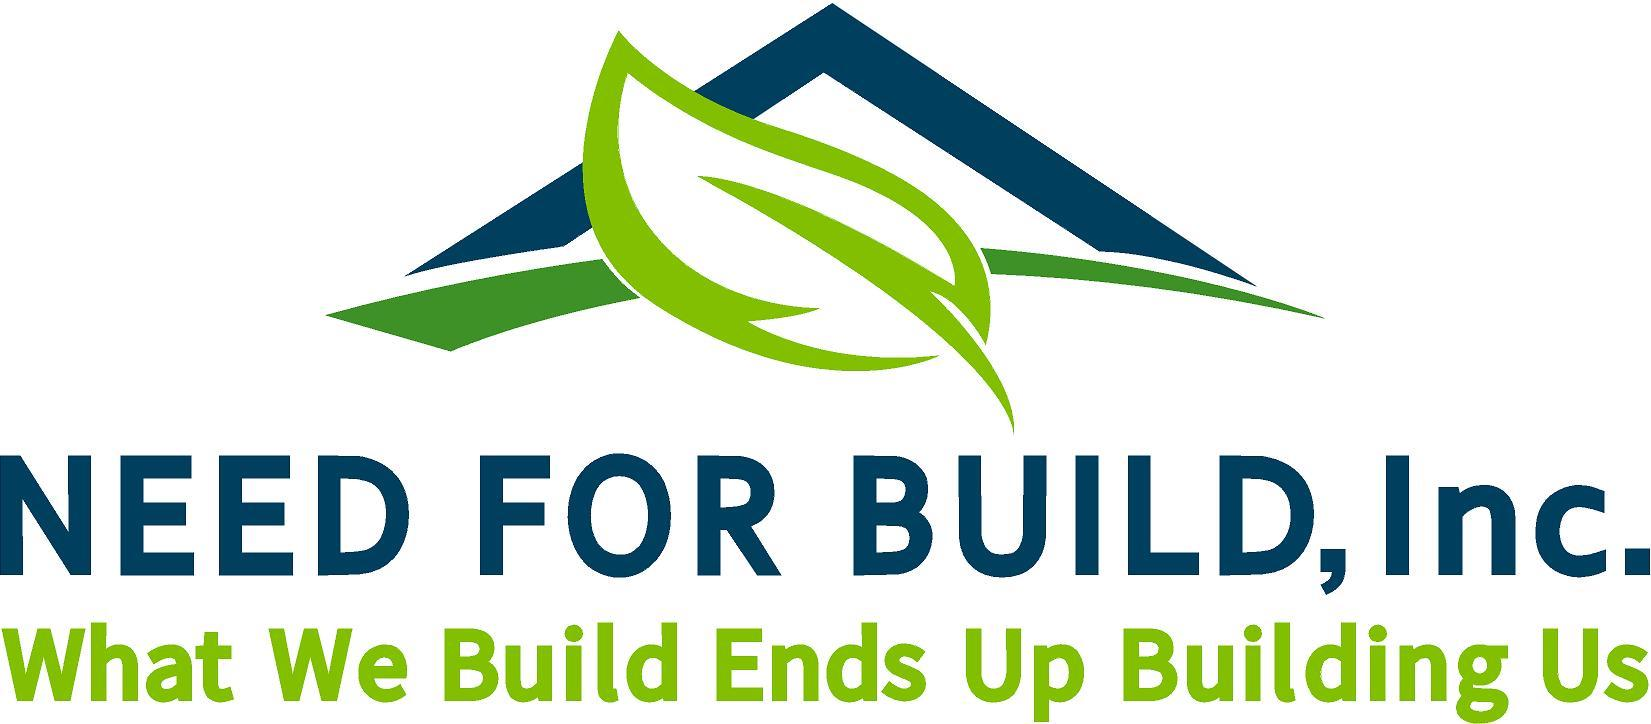 Need For Build Inc logo